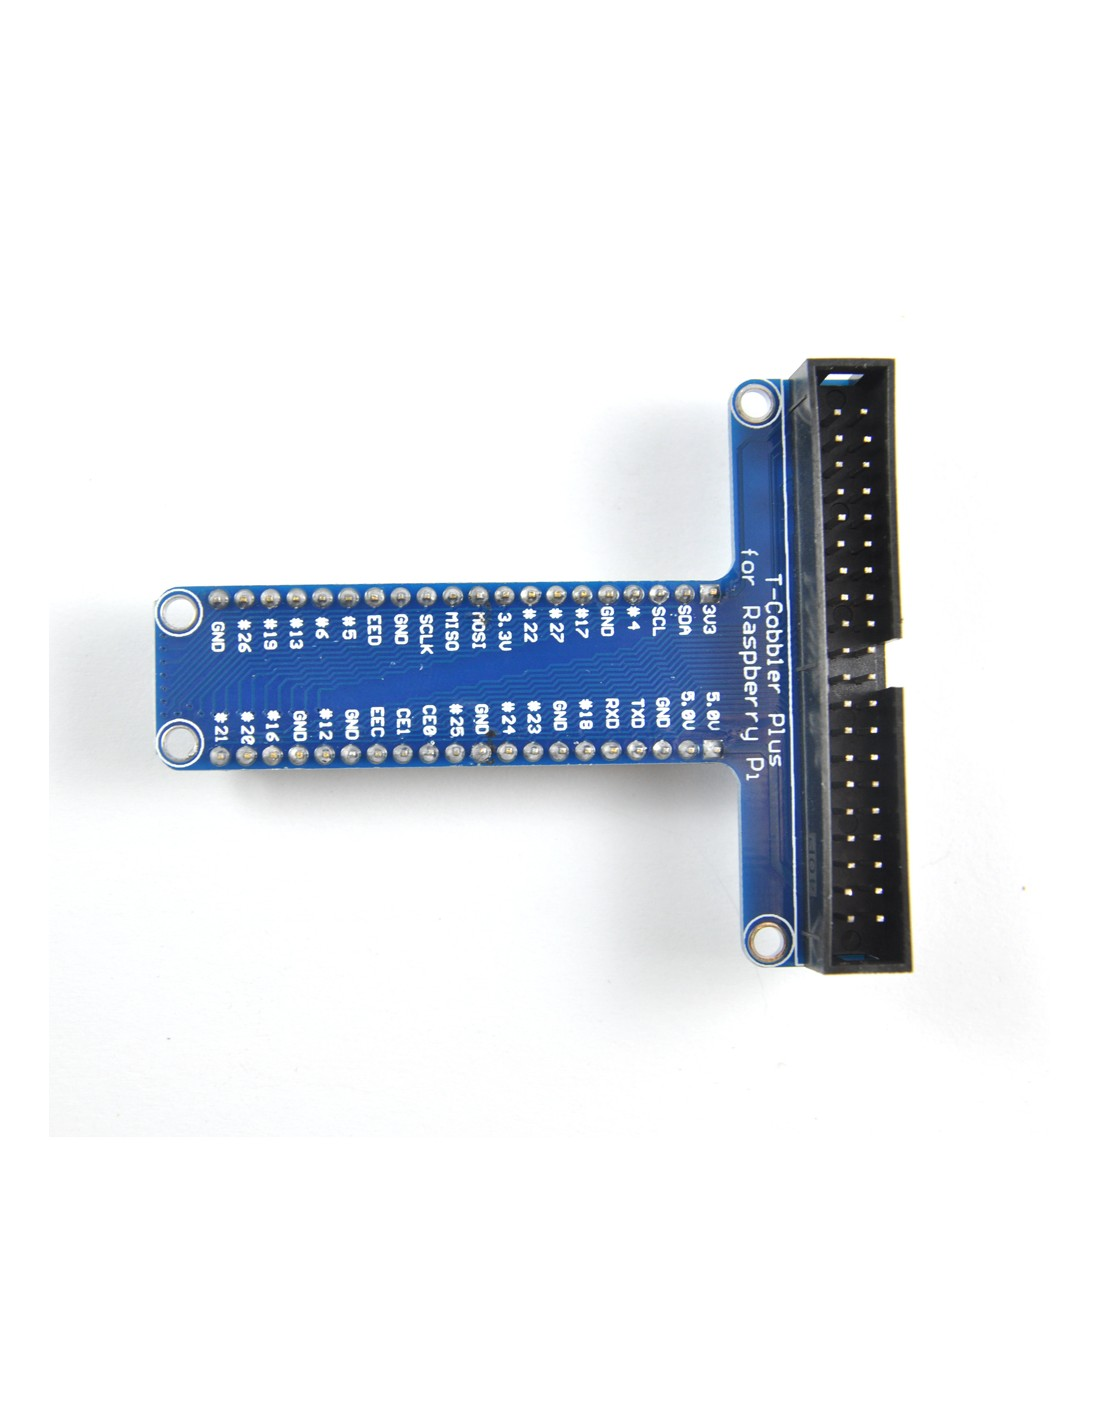 Breakout for Raspberry Pi A+/B+/2/3 to Breadboard (T-Cobbler Plus)